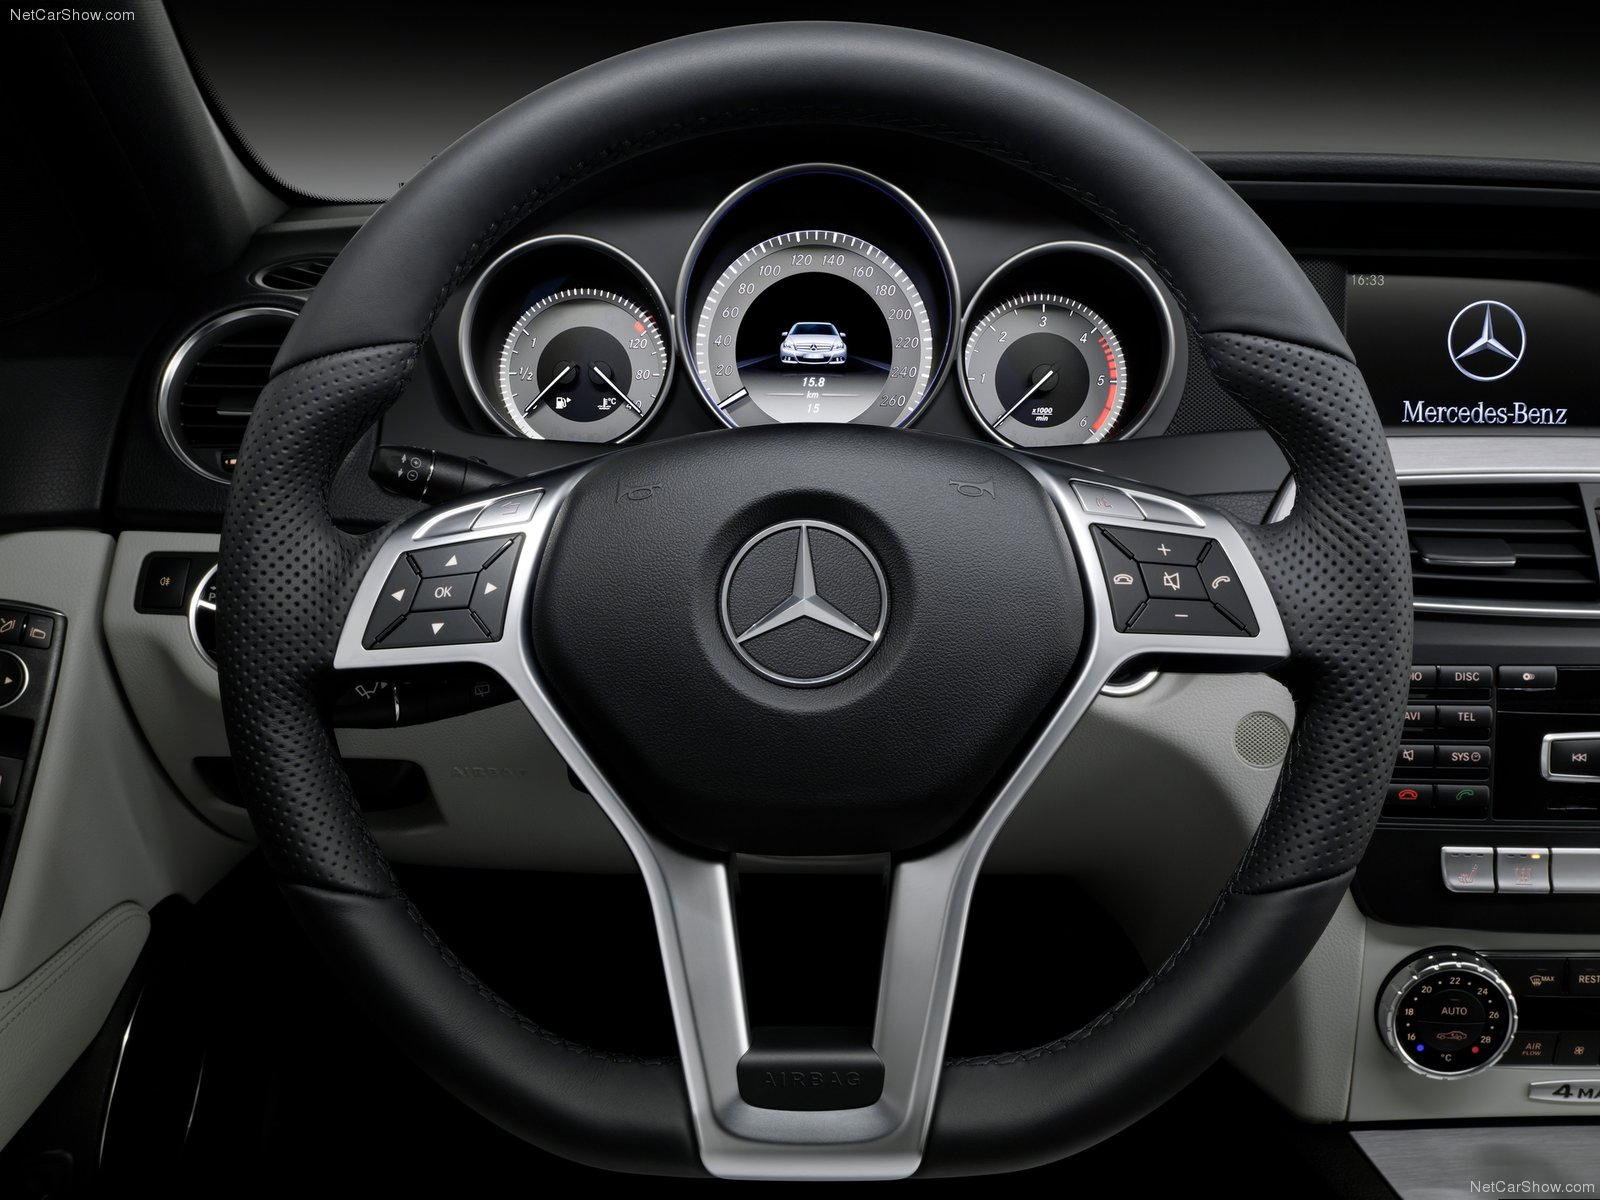 Ex les Of Menus In Spanish further 604160 Latest 2017 W213 Interior Exterior Photos moreover 2014 furthermore Mercedes Benz C Class W204 model 8481 besides 2007 Mercedes Benz CLS550 Pictures 11261. on 2010 mercedes cls550 interior